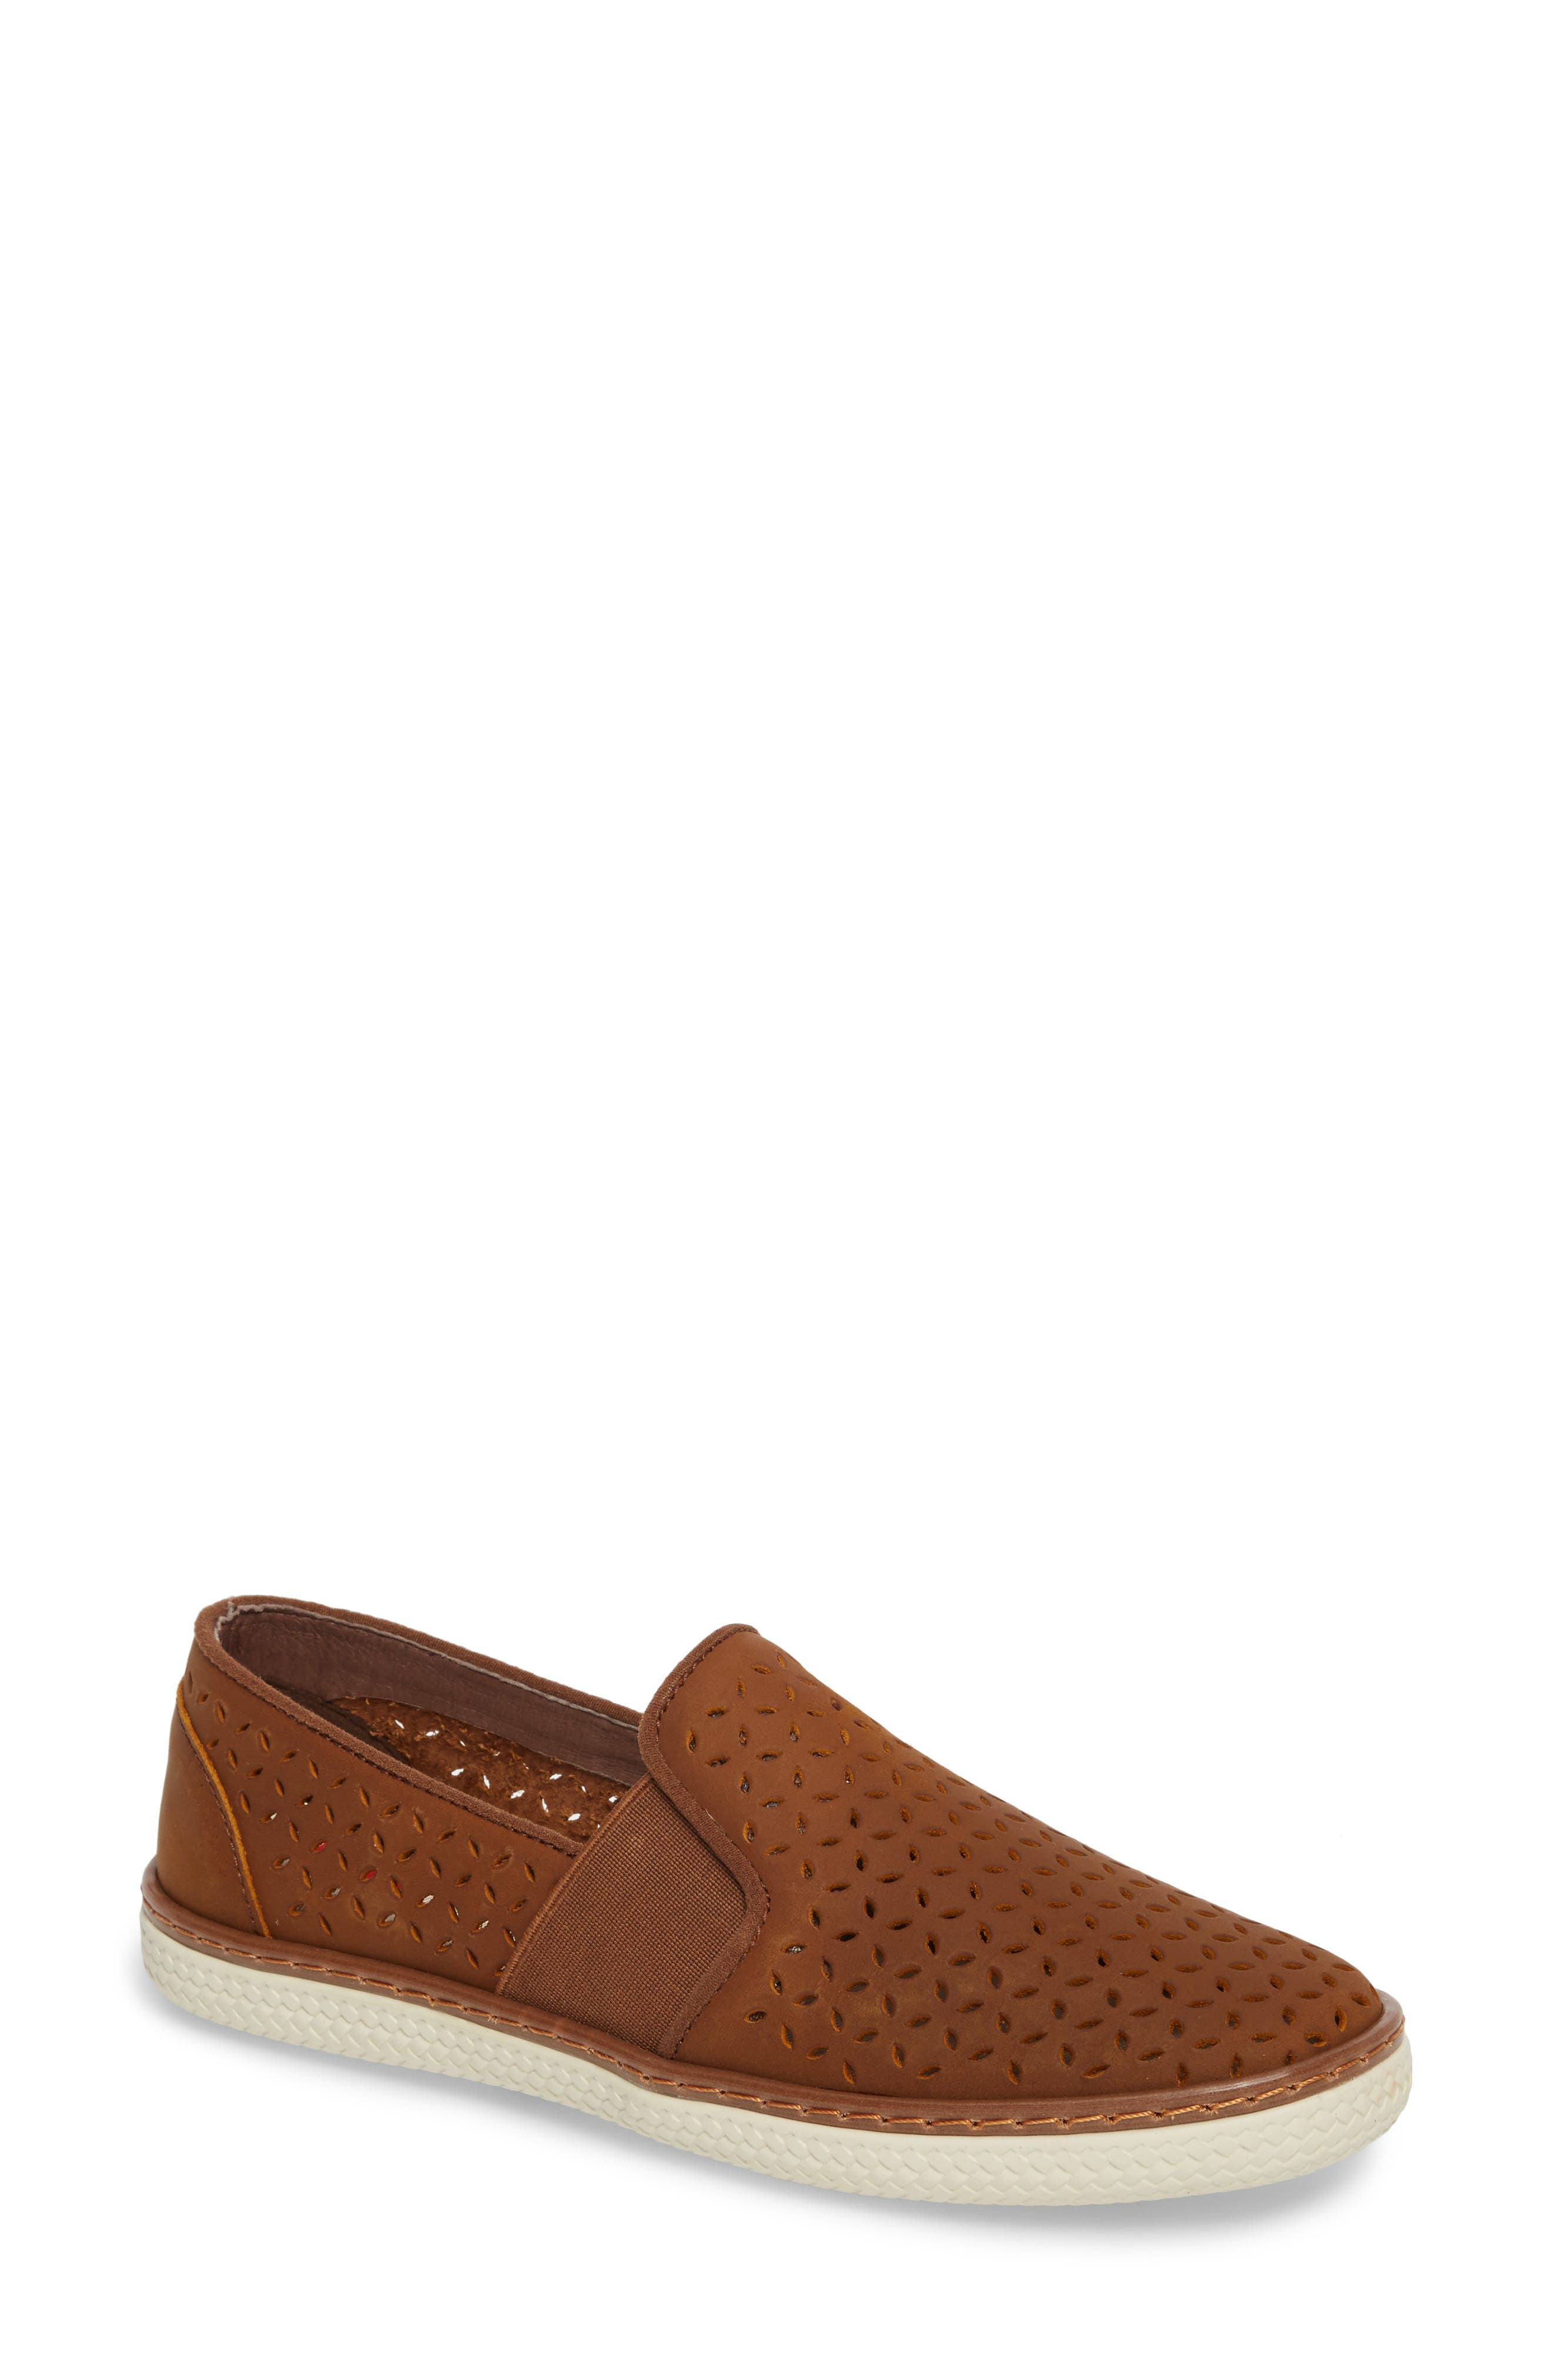 Jasper Perforated Loafer Flat,                             Main thumbnail 1, color,                             Brown Leather